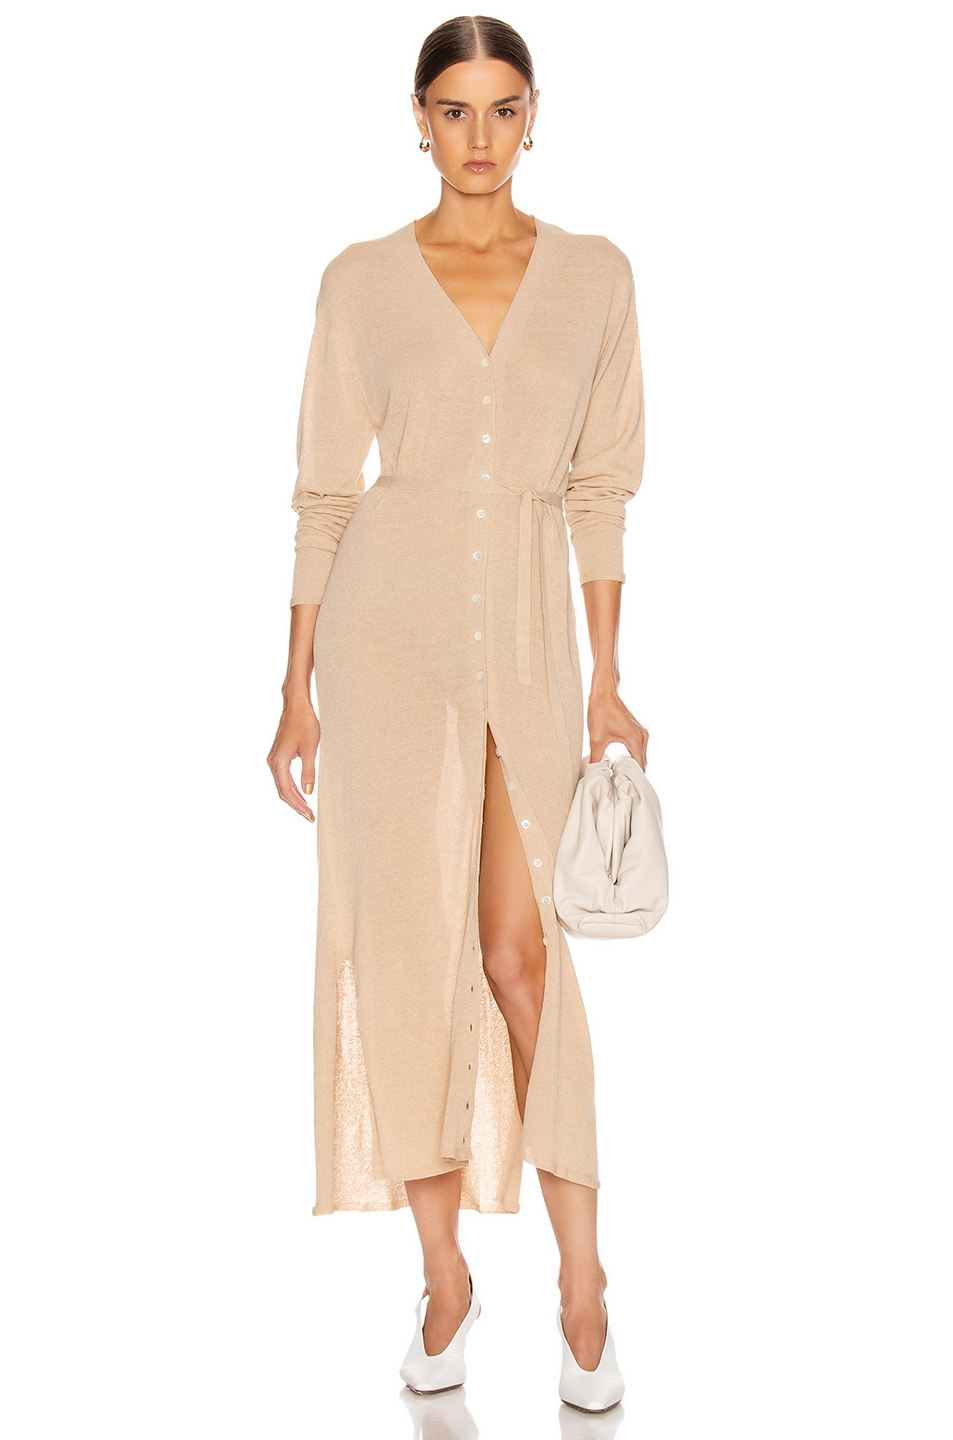 Image 1 of Lemaire Cardigan Dress in Ginger Beige